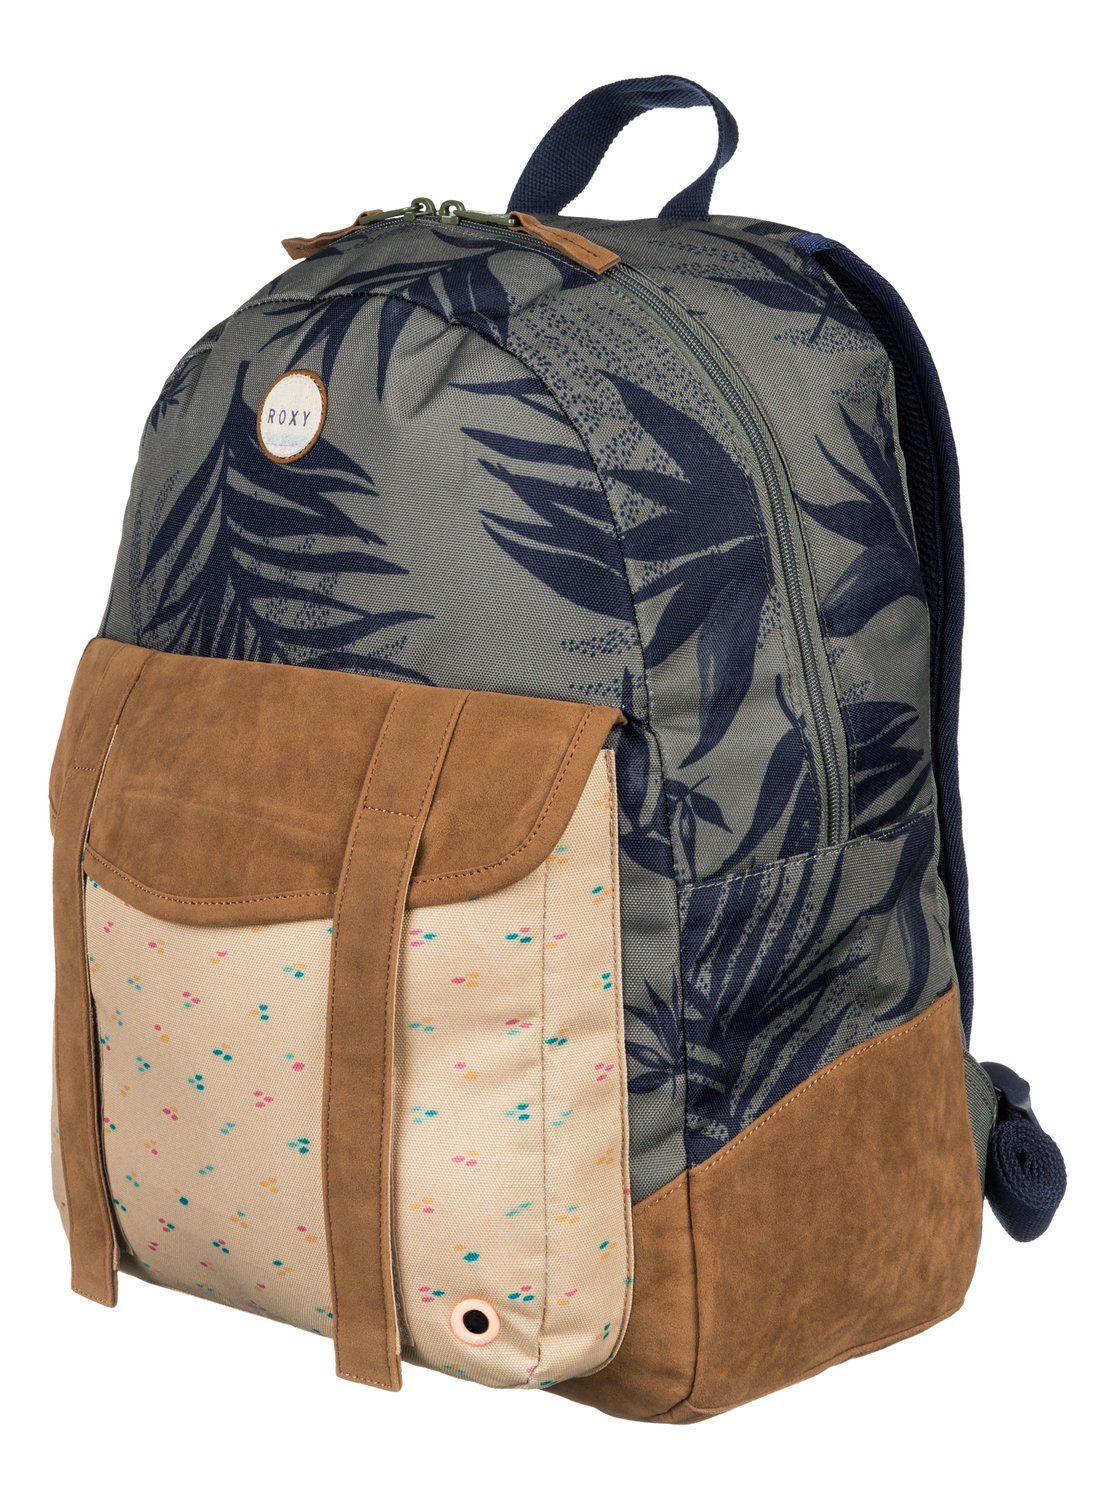 25f4a82639b roxy, Melrose - All-Over Printed Backpack, INDO FLORAL COMBO DUSTY OLIVE  (gpb6)